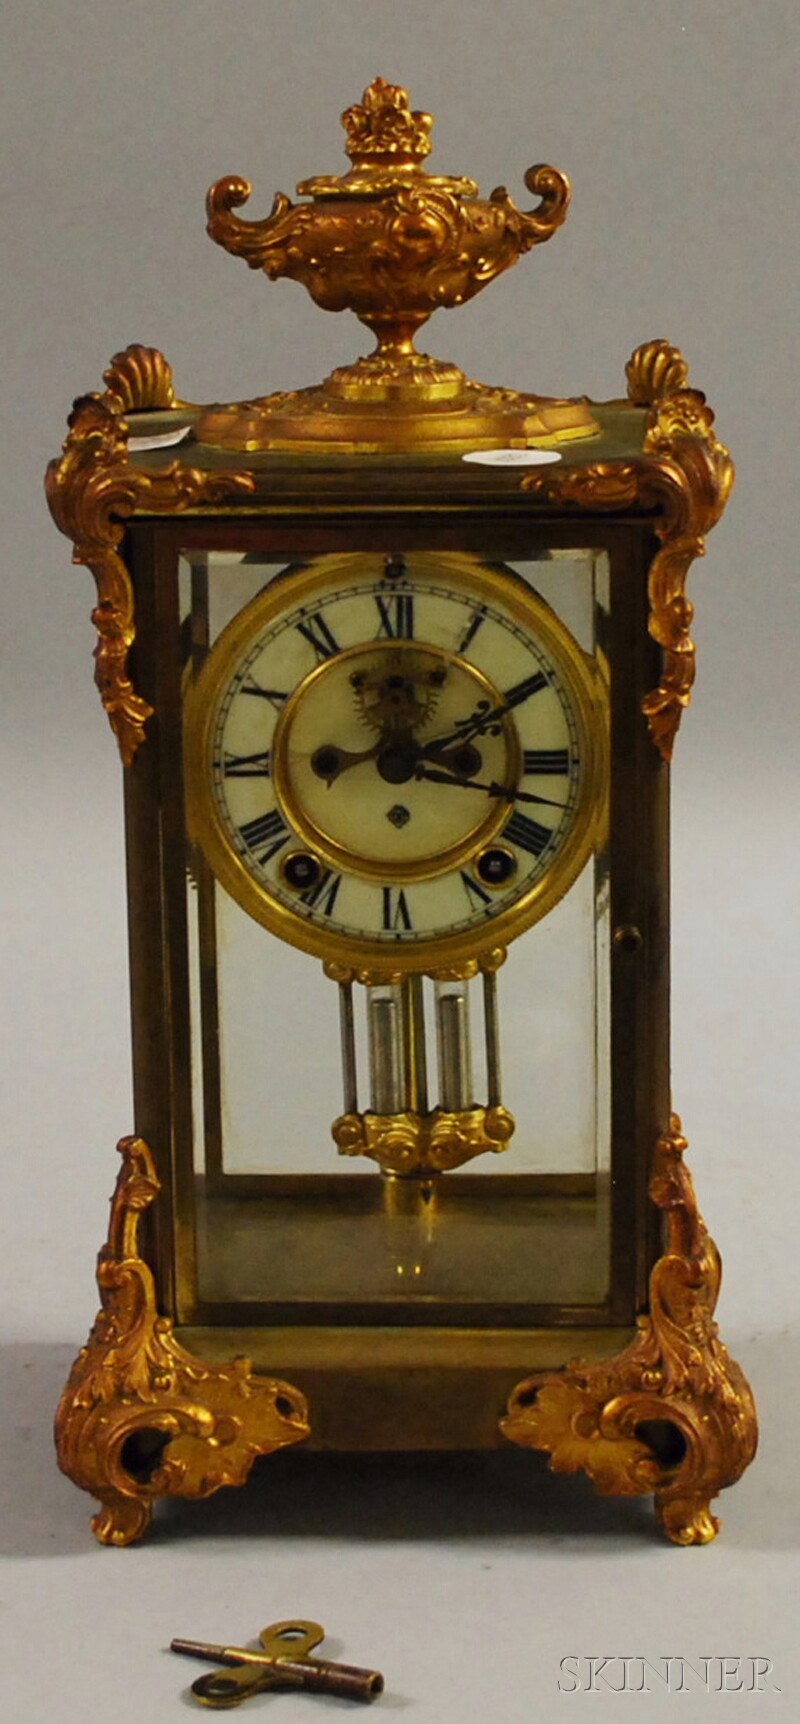 Ansonia French Rococo-style Gilt-brass and Glass Chiming Mantel Clock